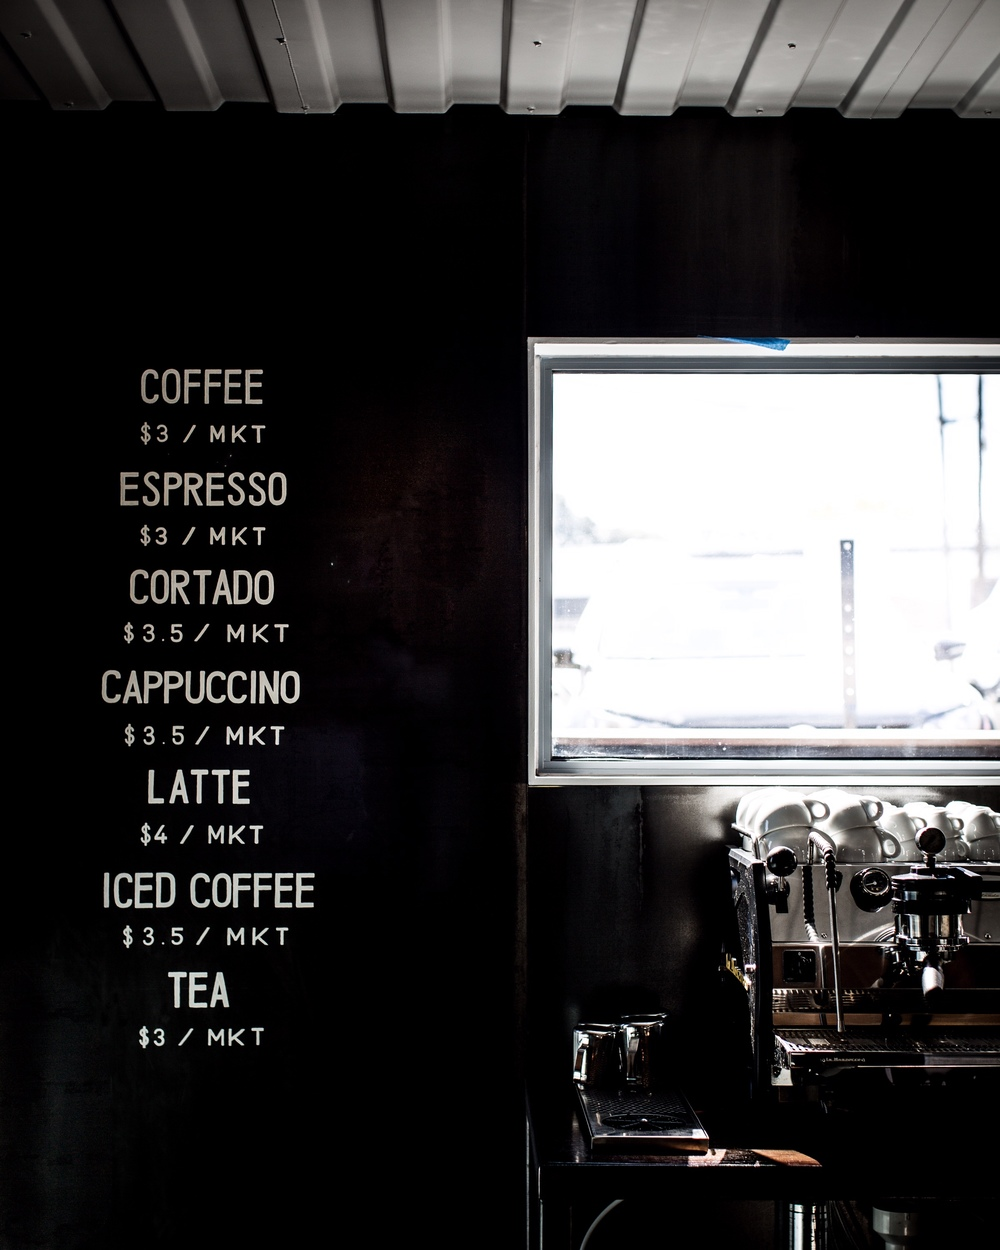 brash_coffee_atlanta_menu.jpg